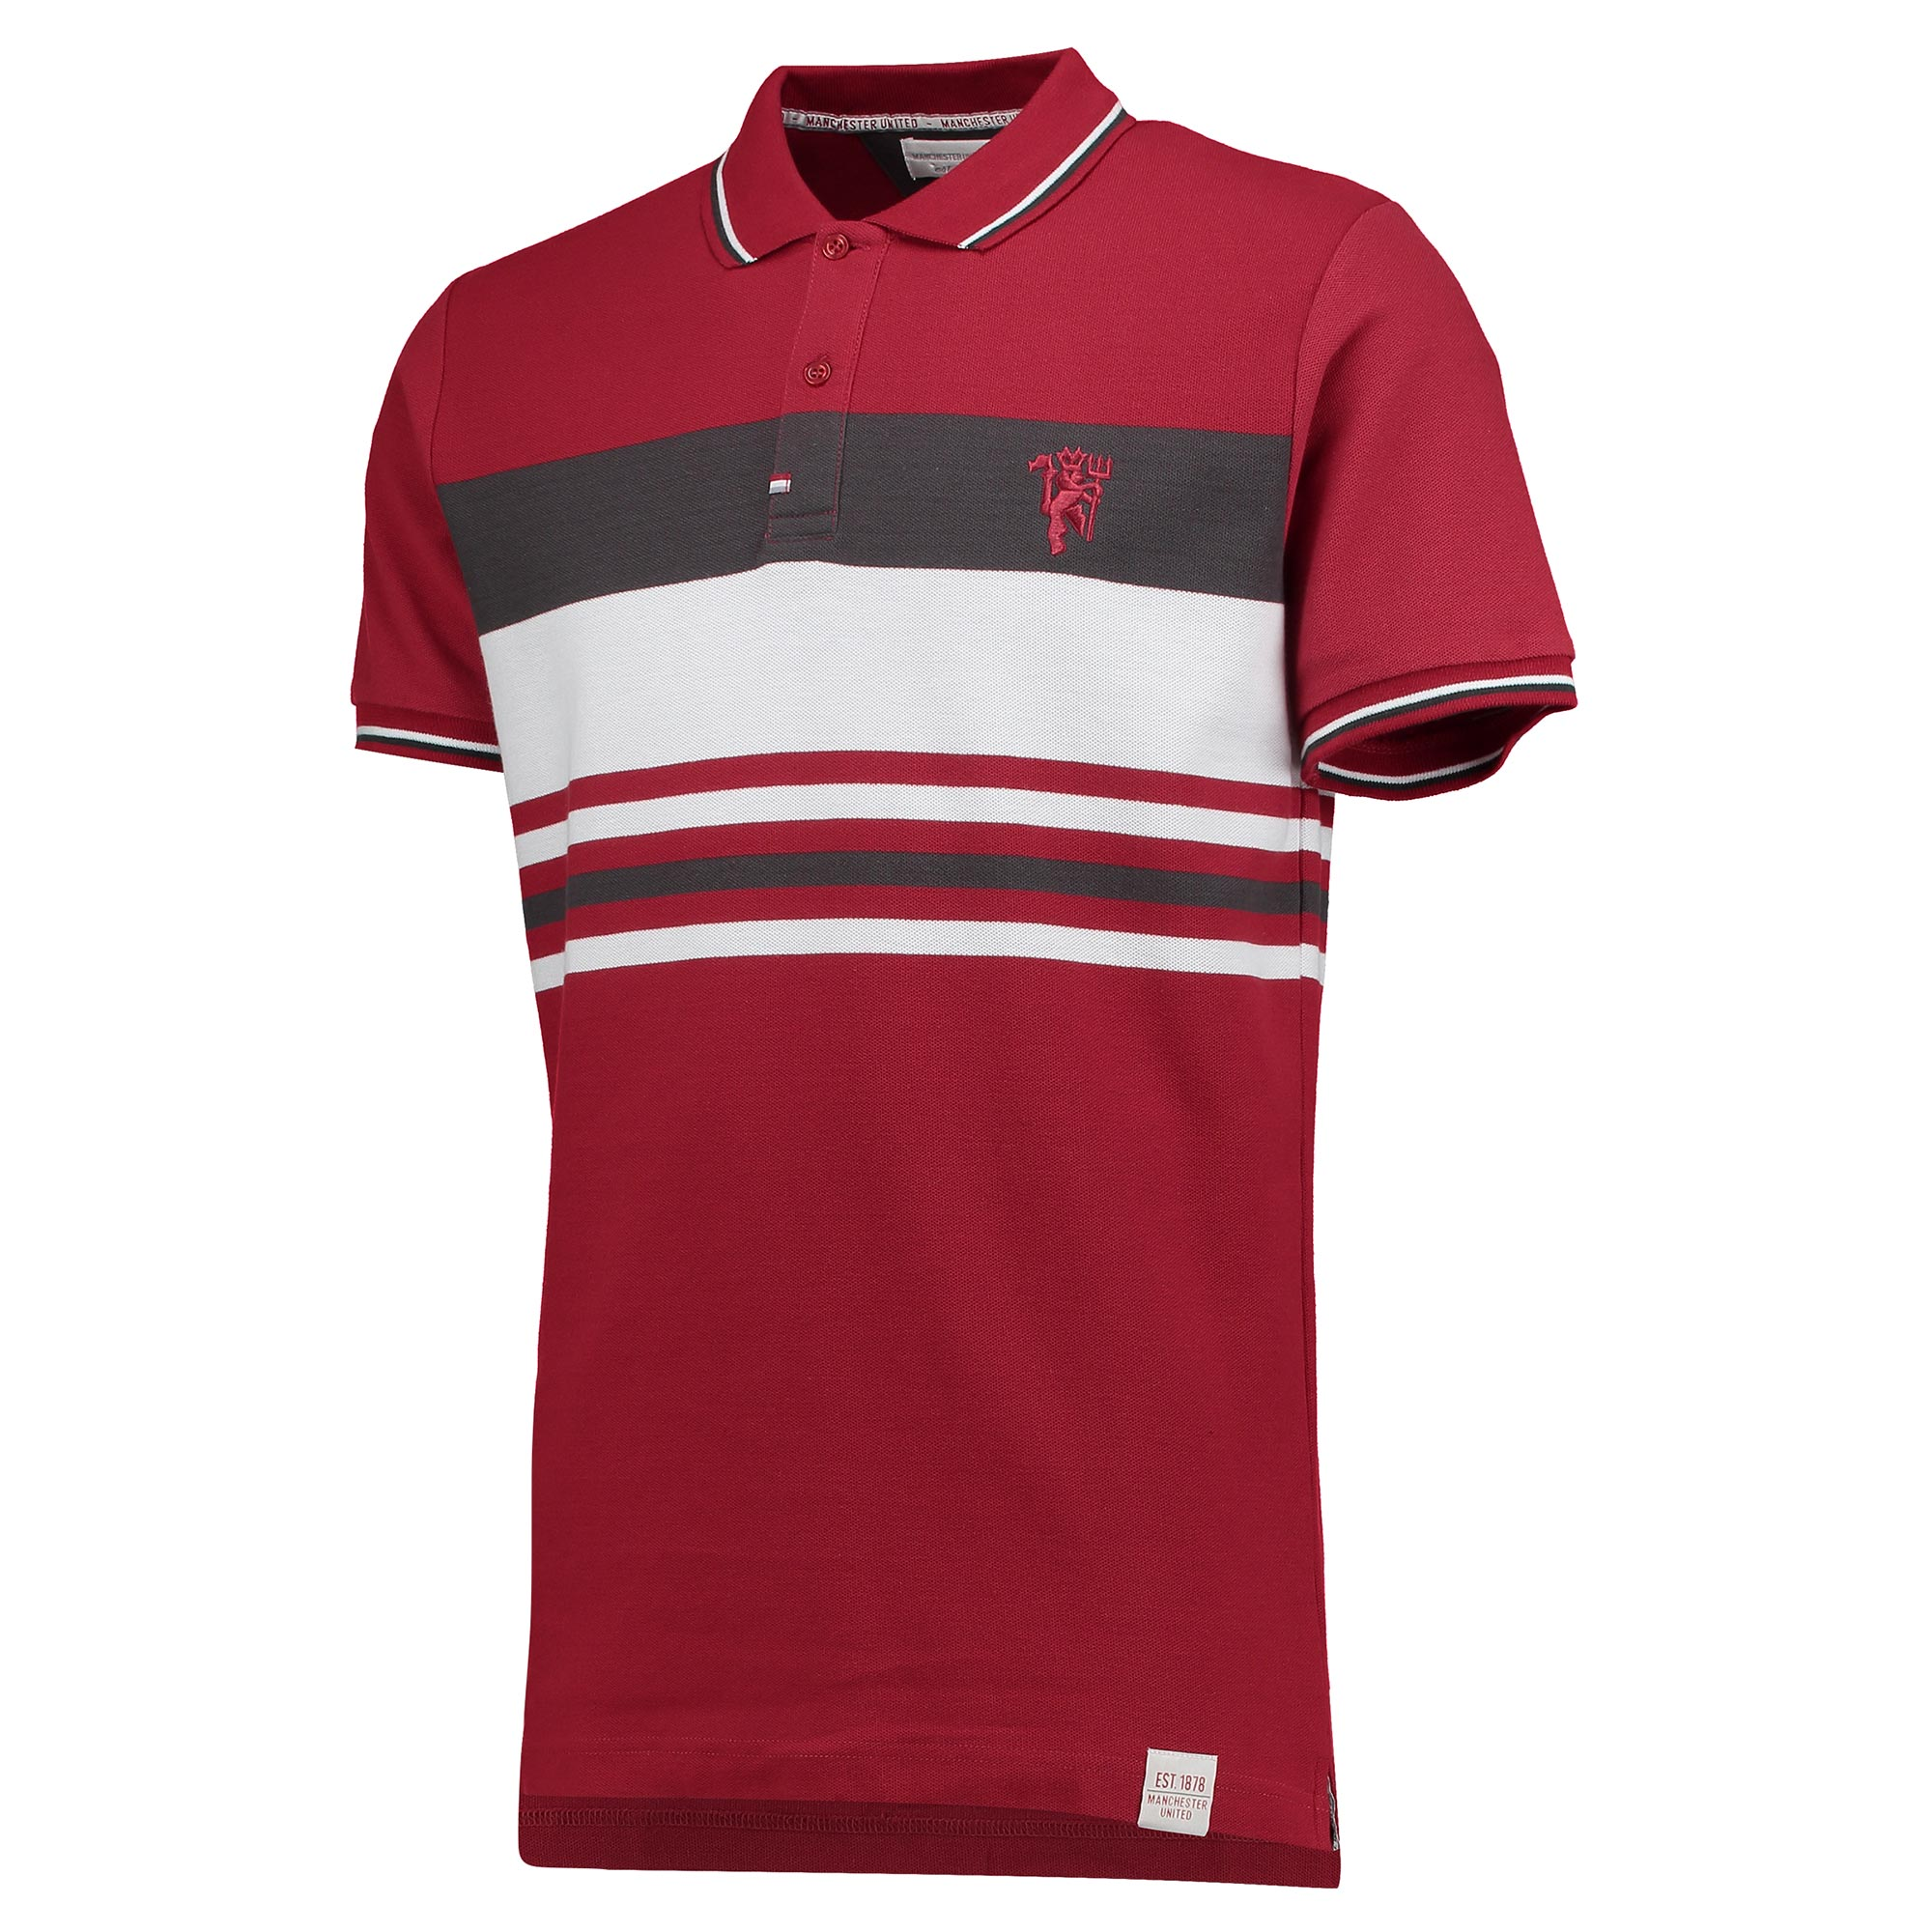 Manchester United Lifestyle Stripe Polo Shirt - Brick Red - Mens